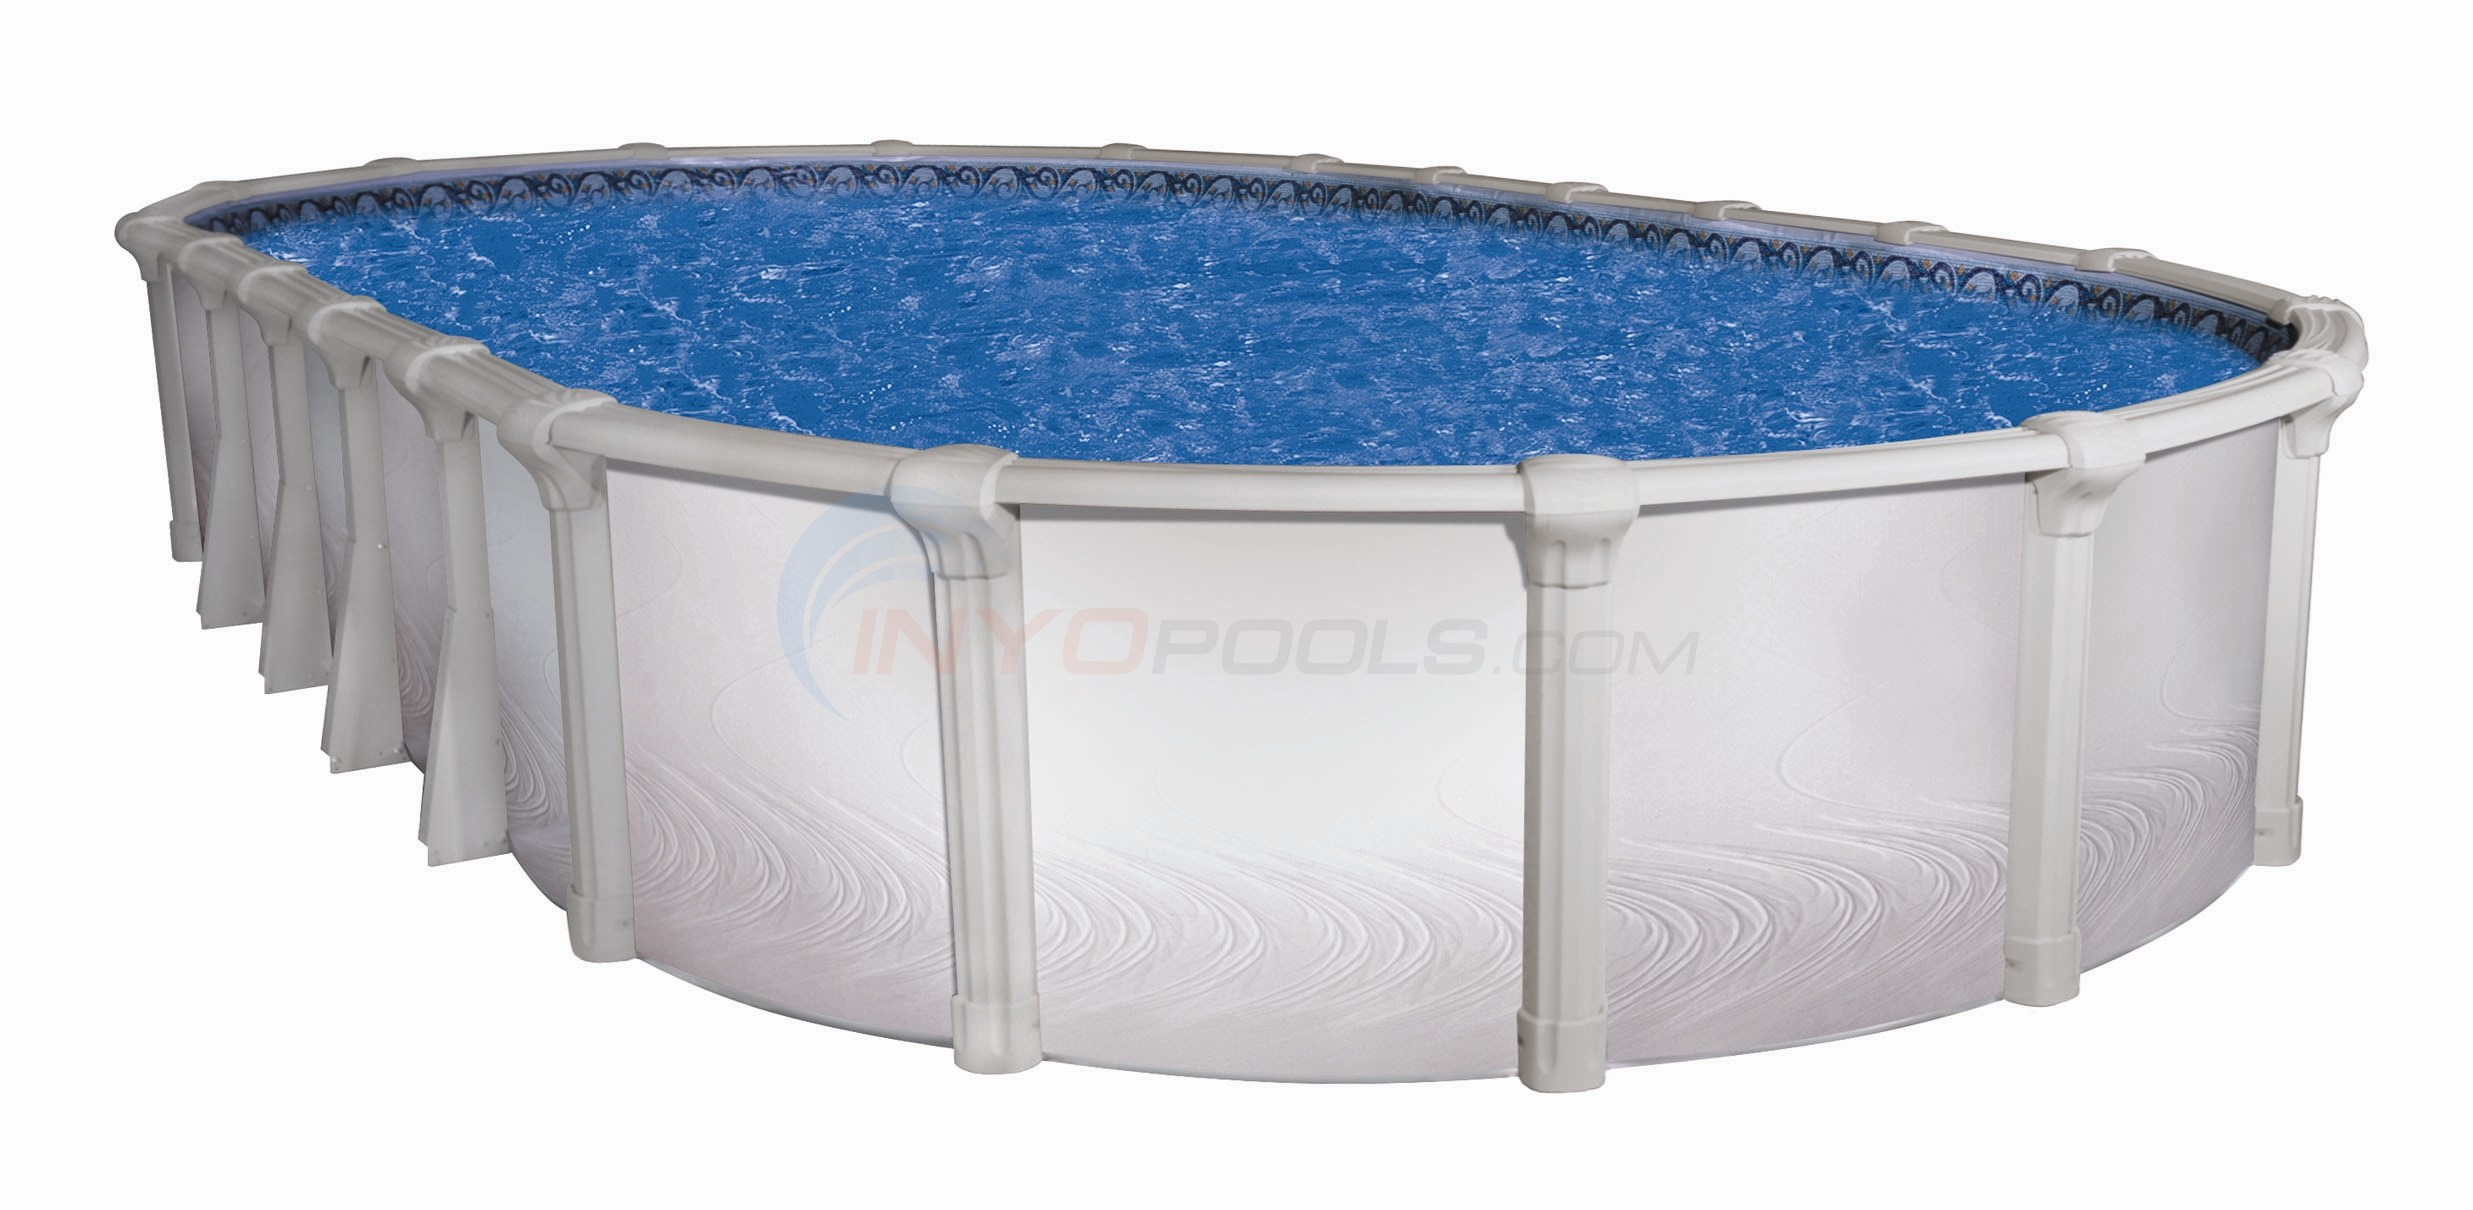 "Morada 12' x 17' Oval 54"" Hybrid Above Ground Pool (Skimmer Included)"